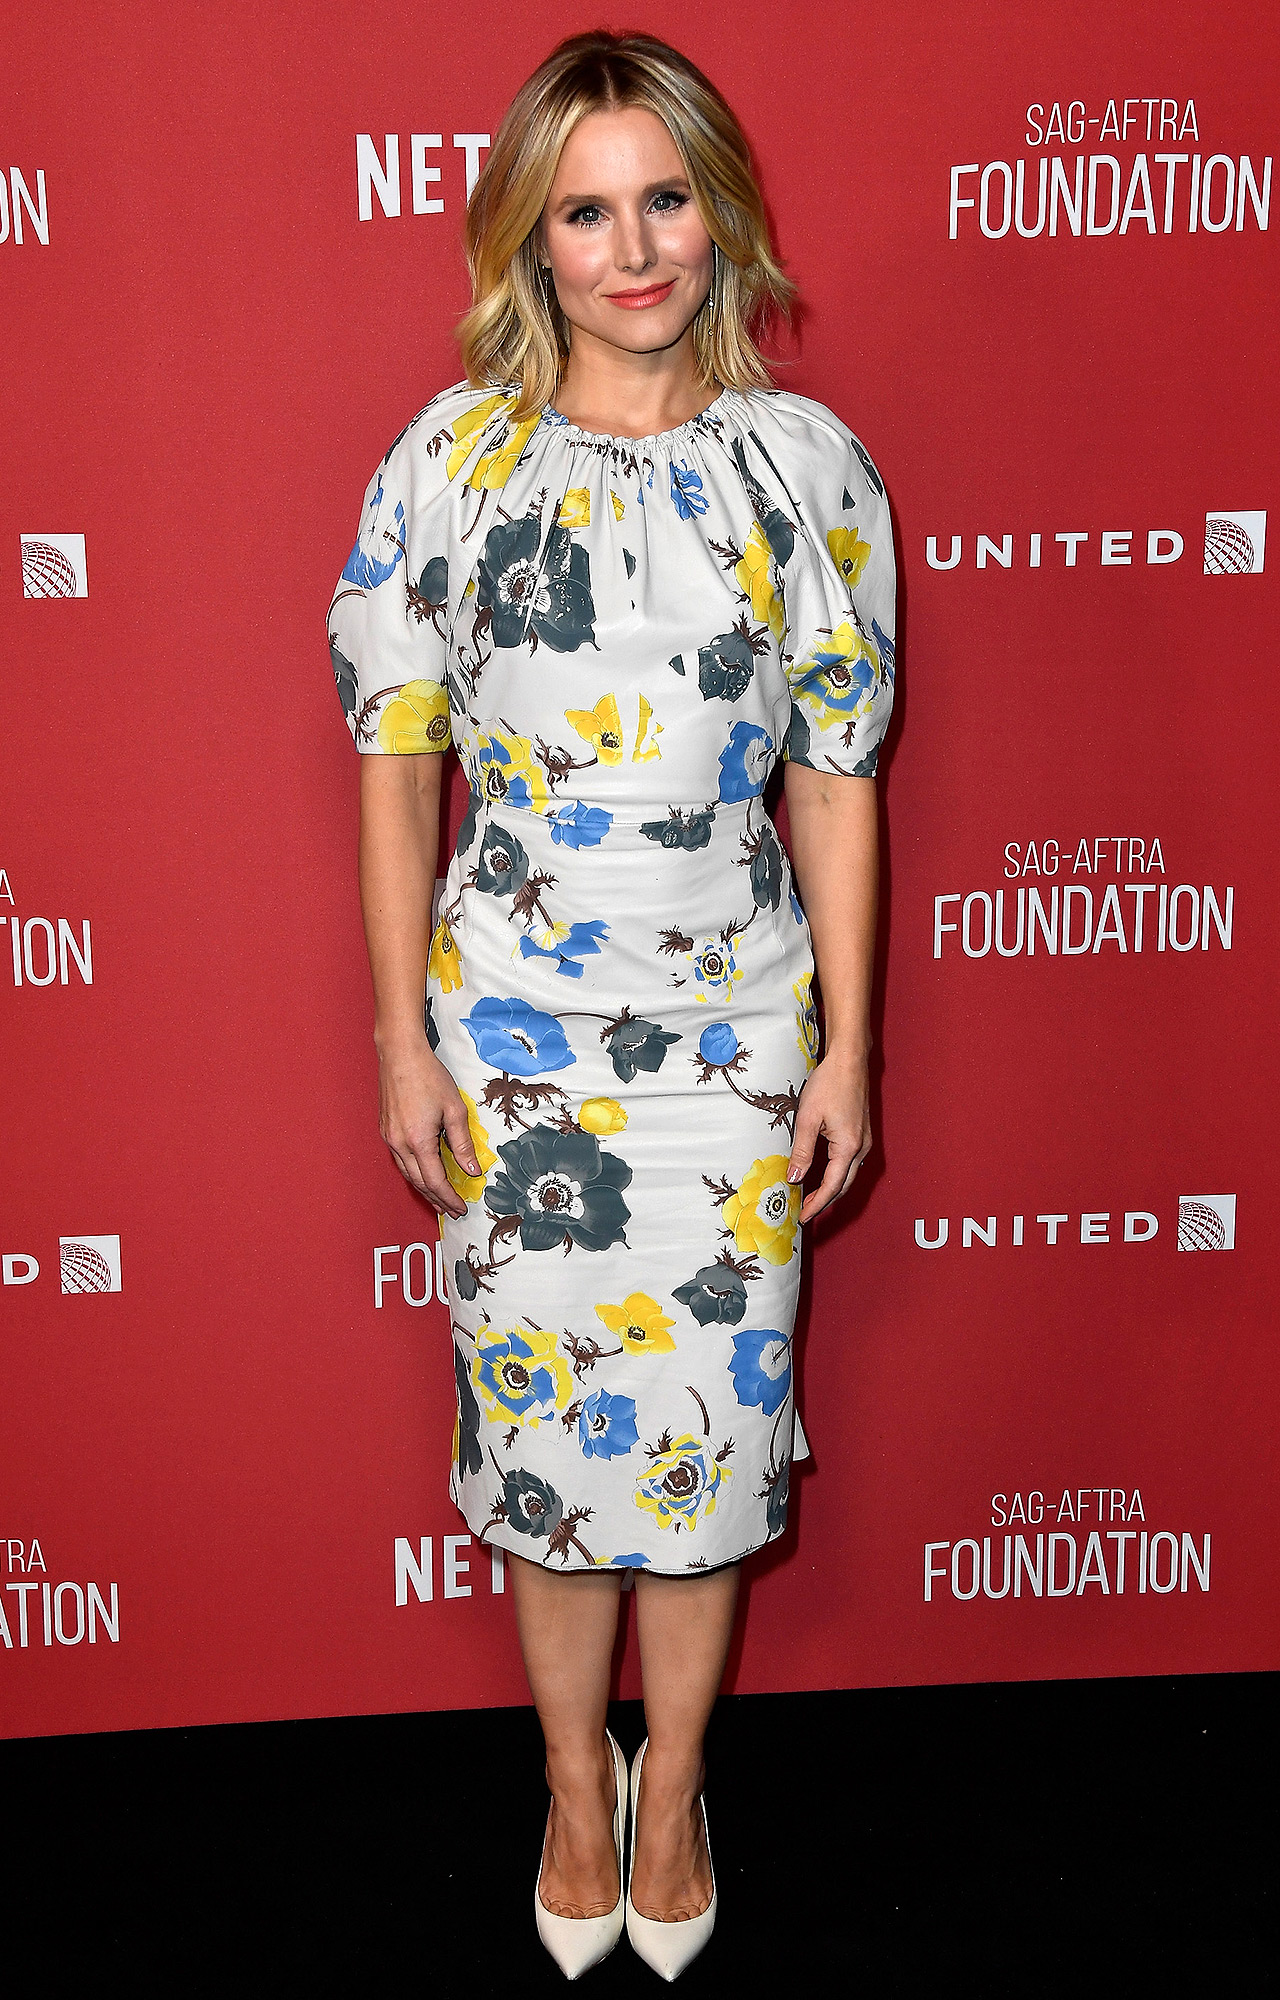 SAG-AFTRA Foundation Patron of the Artists Awards 2017 - Arrivals